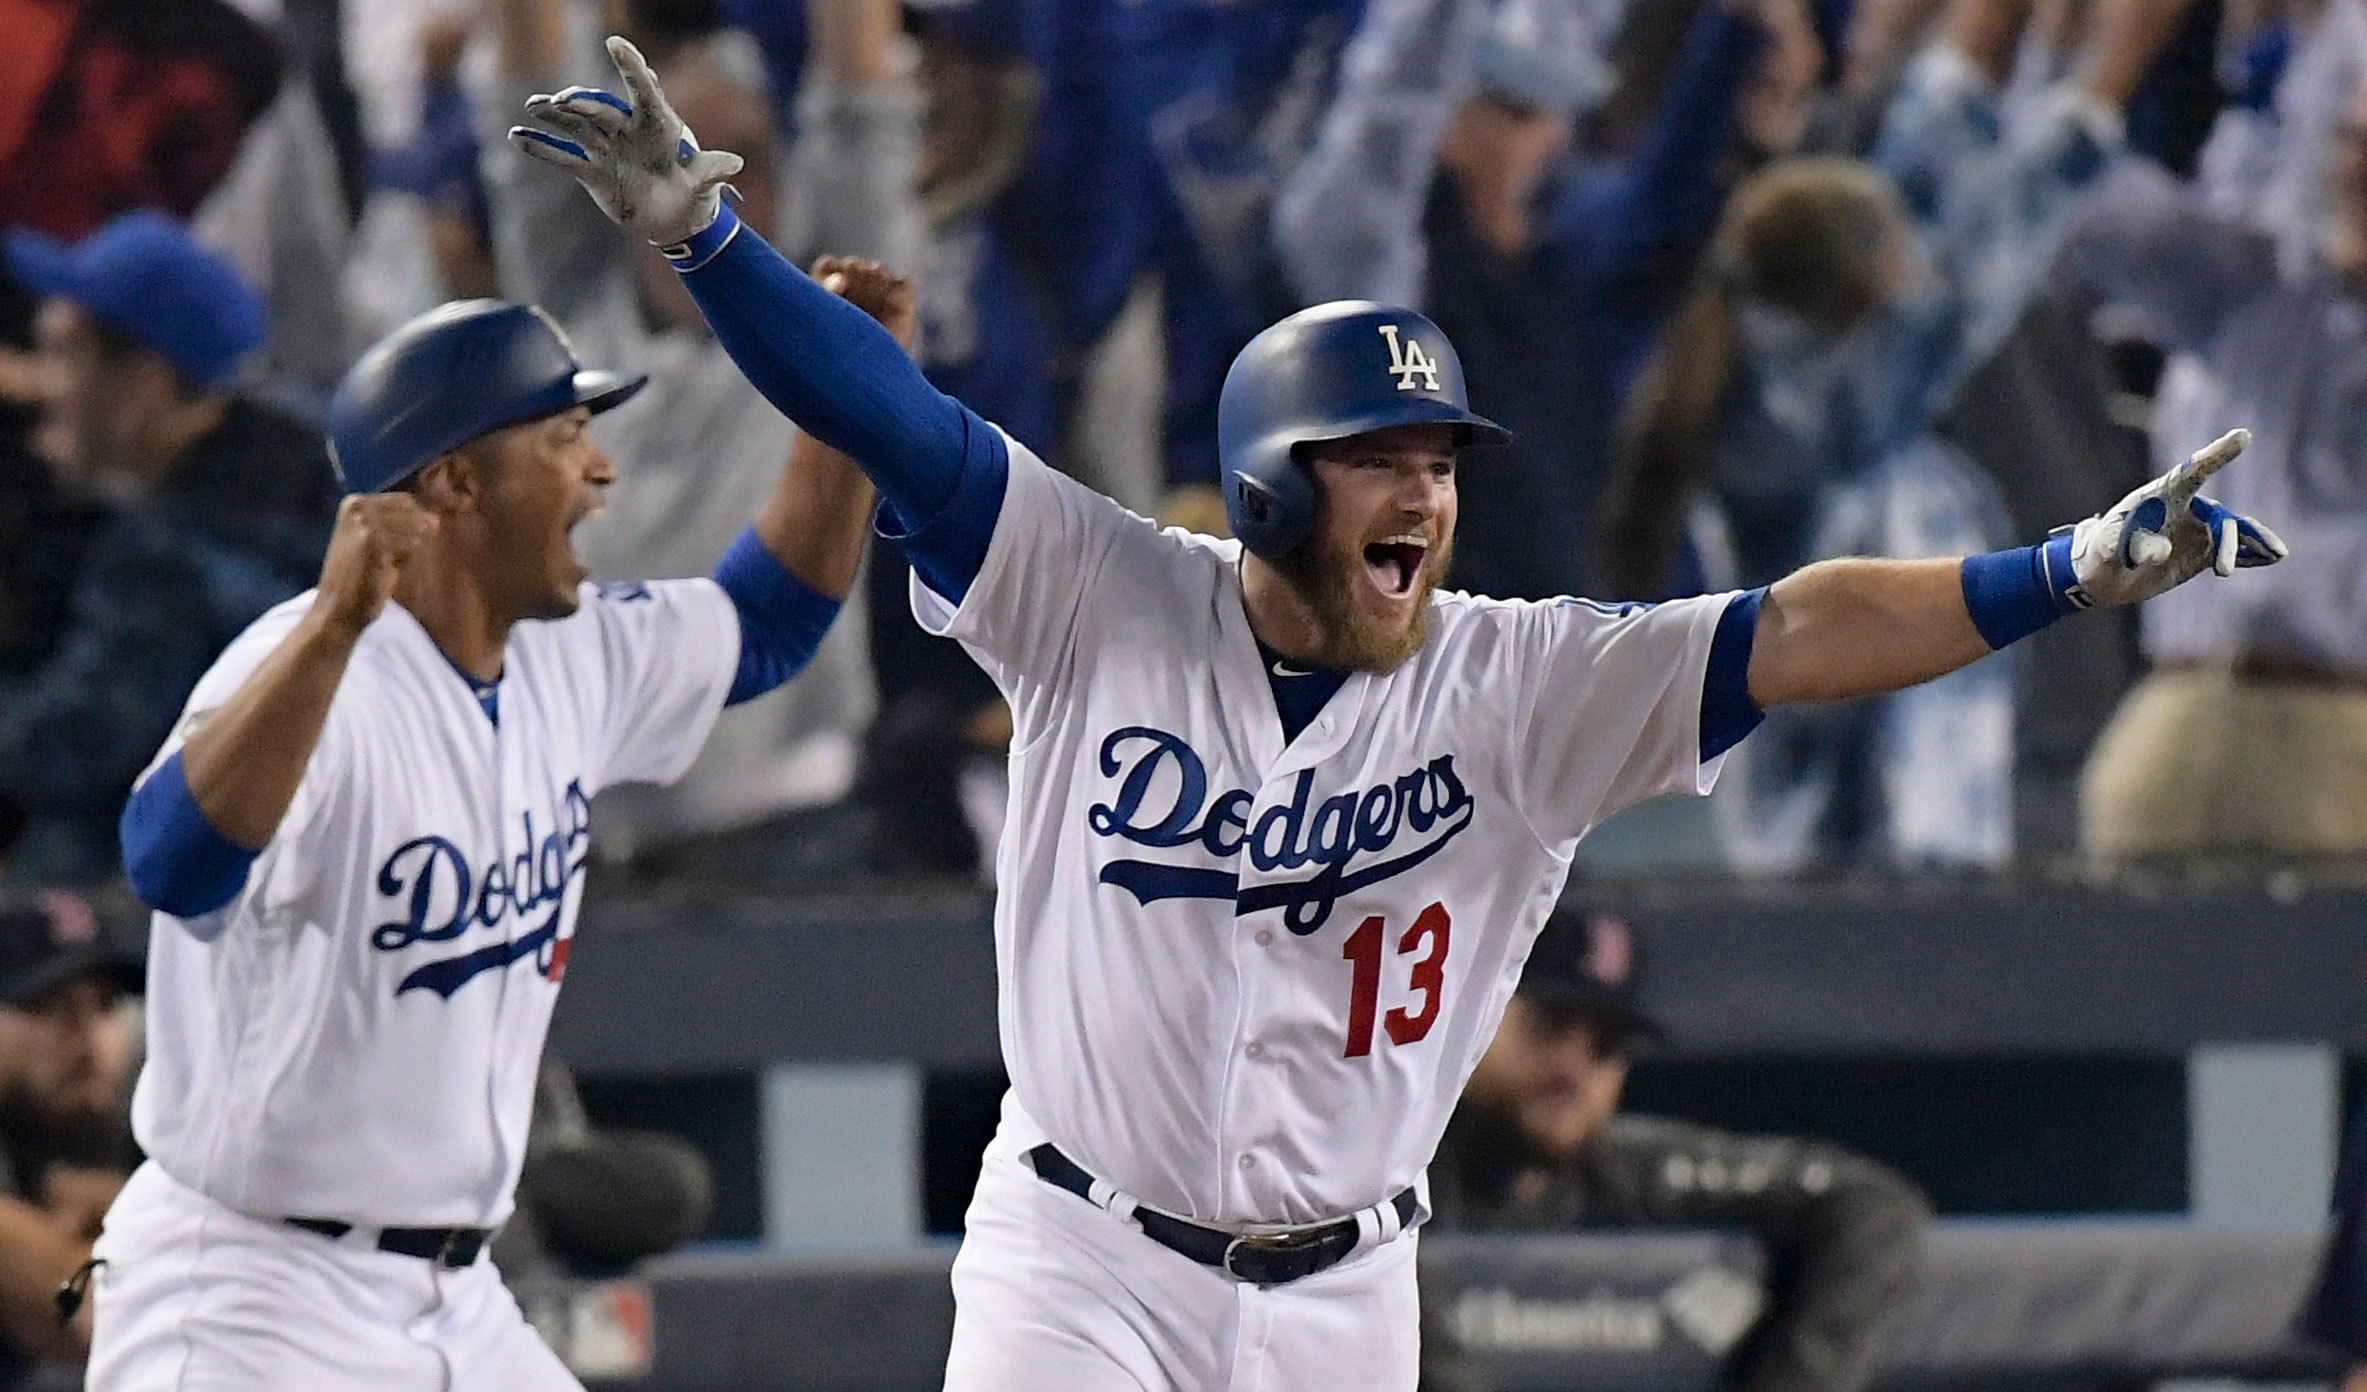 <div class='meta'><div class='origin-logo' data-origin='AP'></div><span class='caption-text' data-credit='AP Photo/Mark J. Terrill'>Los Angeles Dodgers' Max Muncy celebrates his walk off home run against the Boston Red Sox during the 18th inning in Game 3 of the World Series.</span></div>